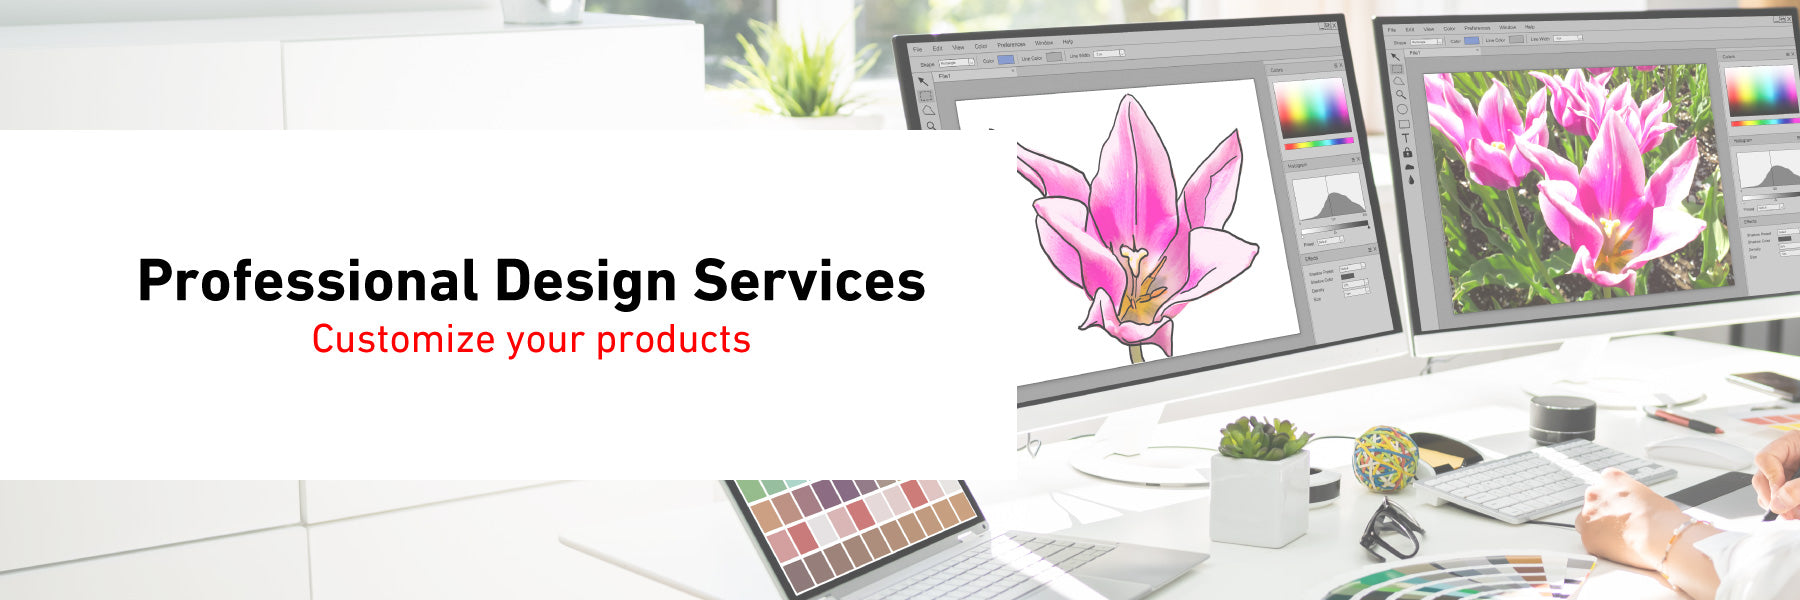 Professional Design Service.Customize your products